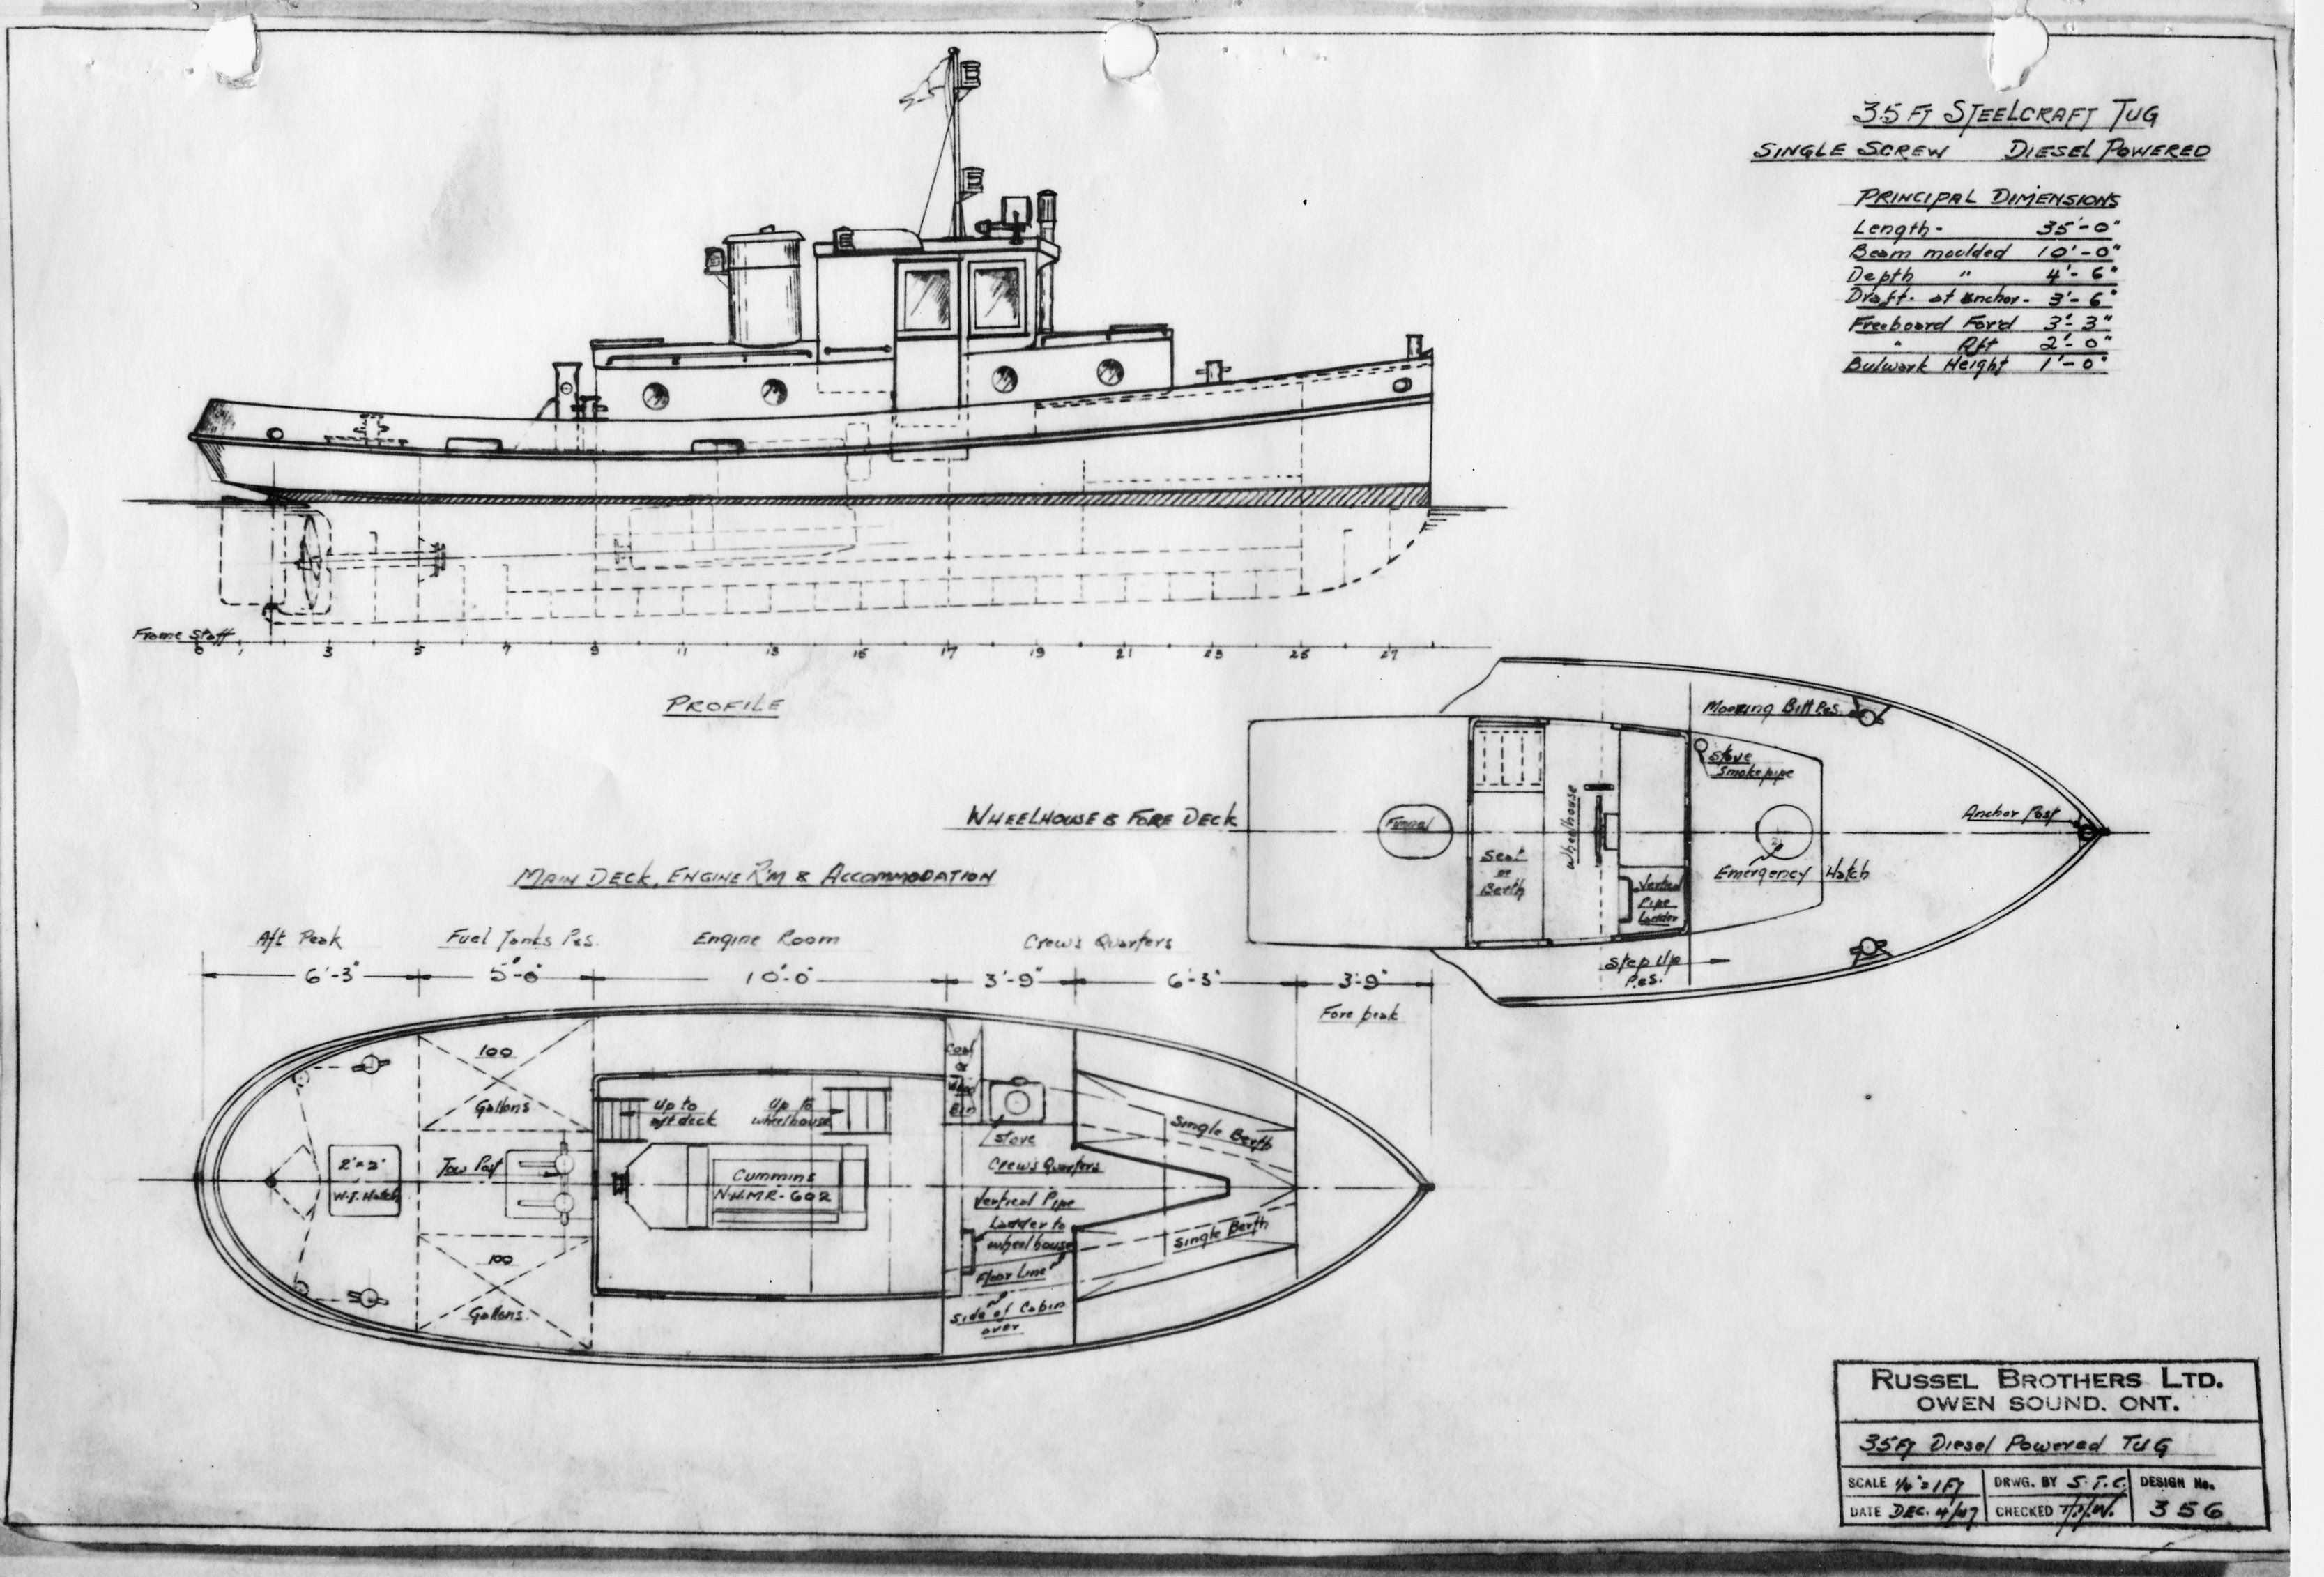 Free boat blueprints bing images tug boats pinterest free boat blueprints bing images malvernweather Gallery